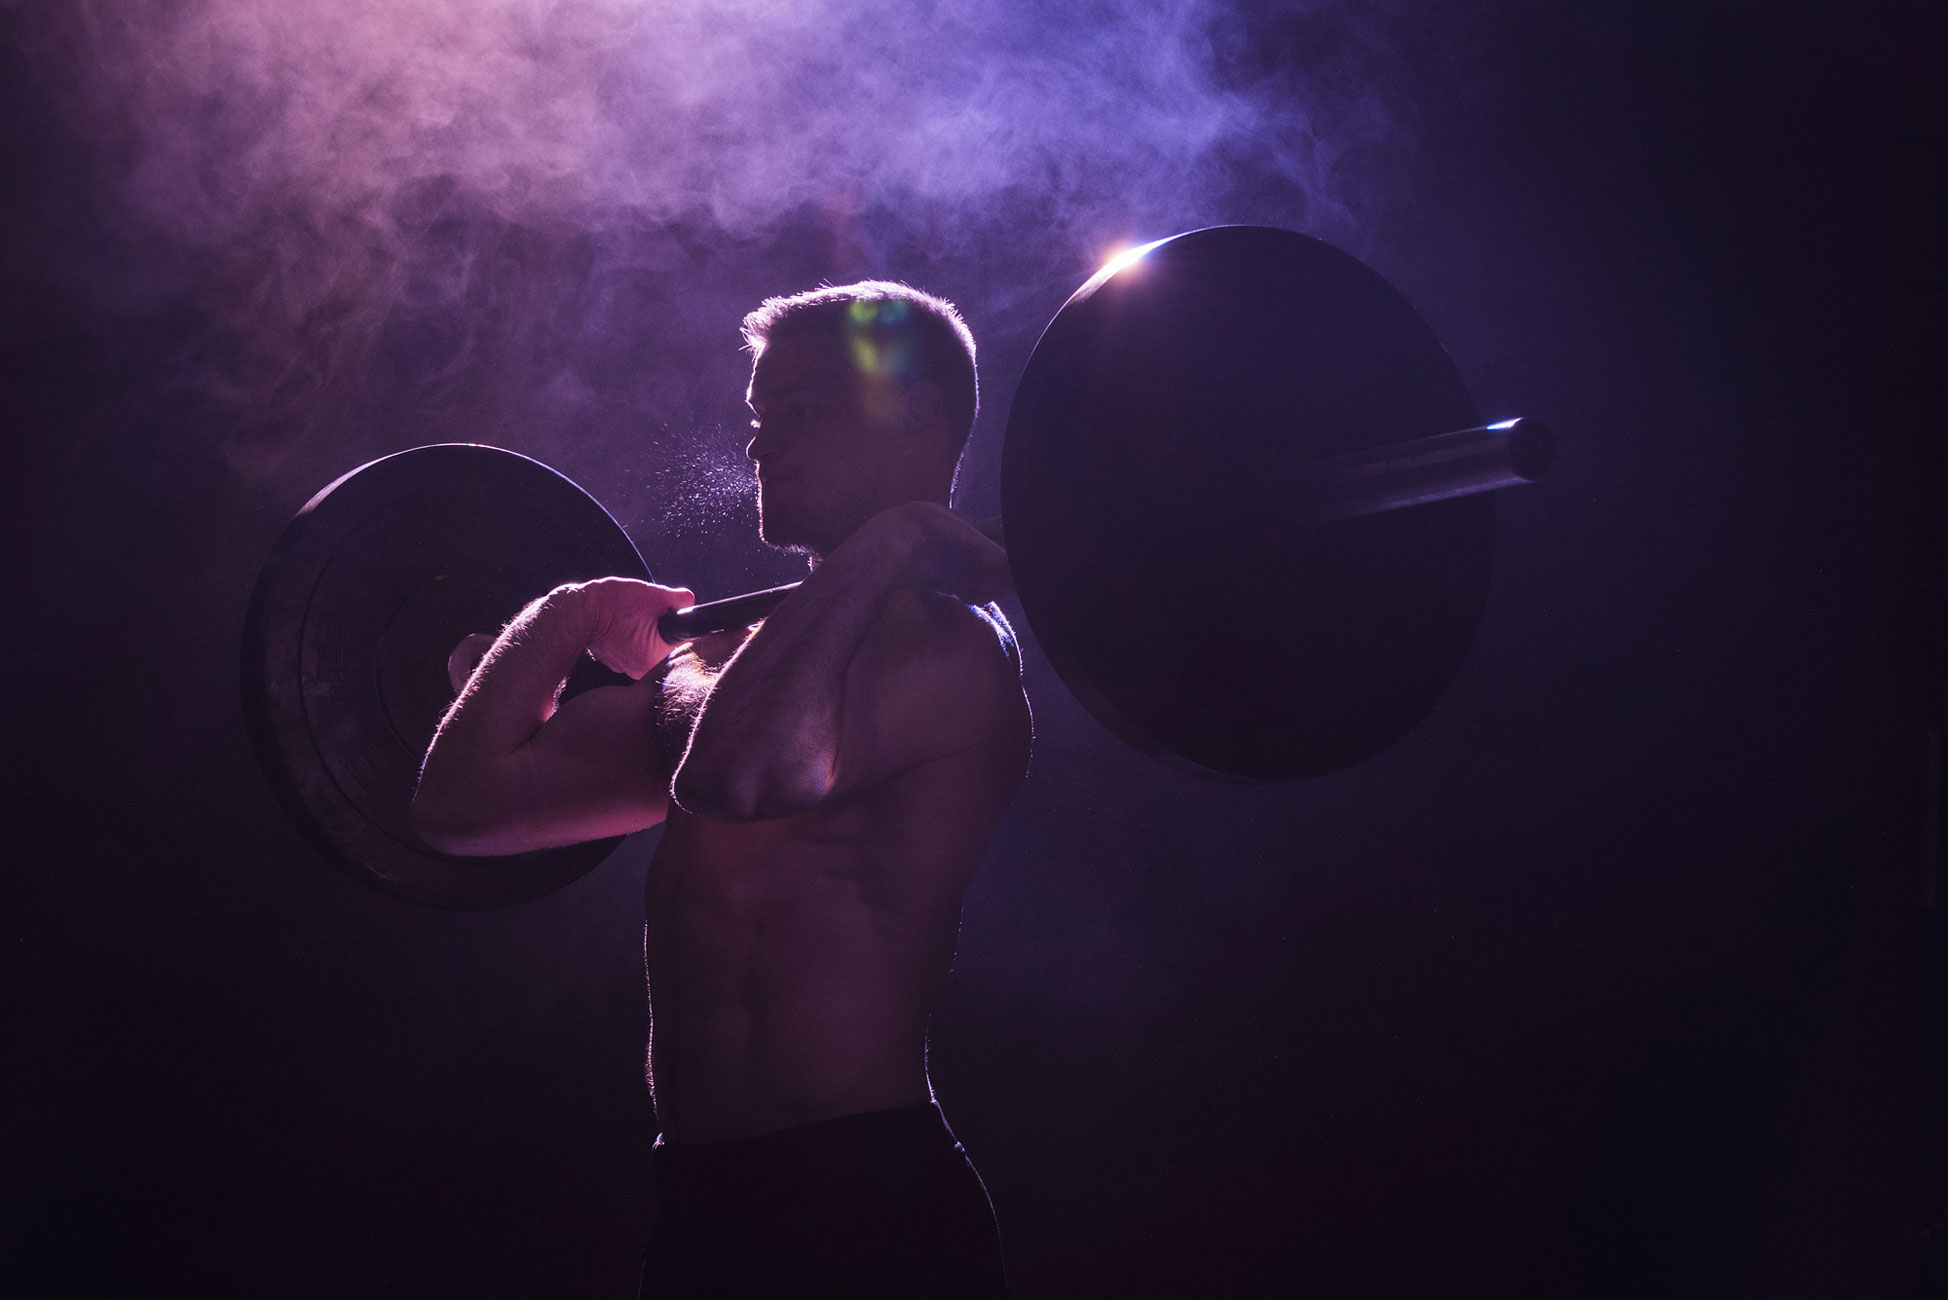 Crossfit: Smoke and Light